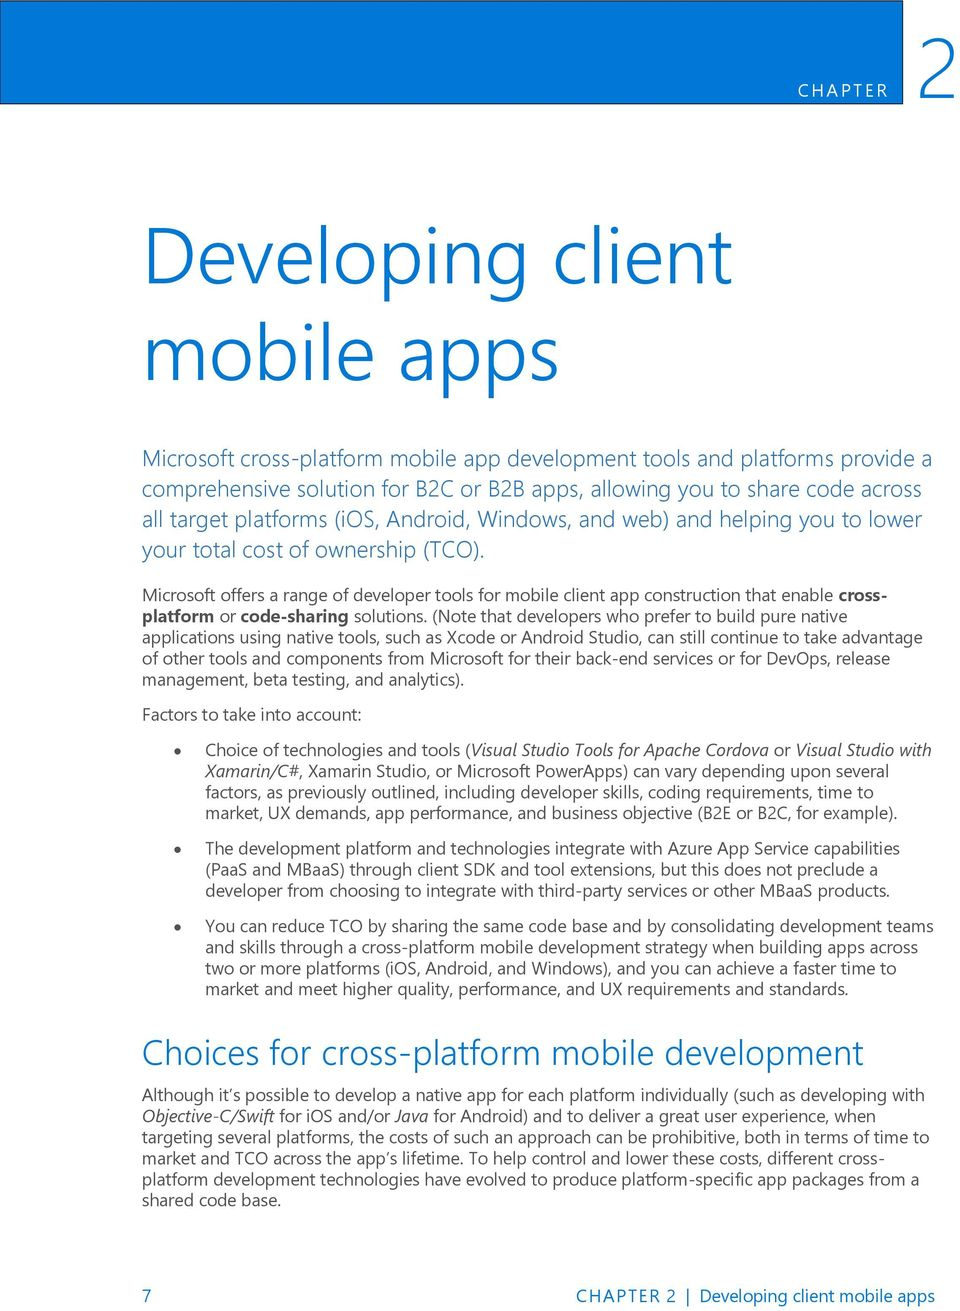 Microsoft platform and tools for mobile application